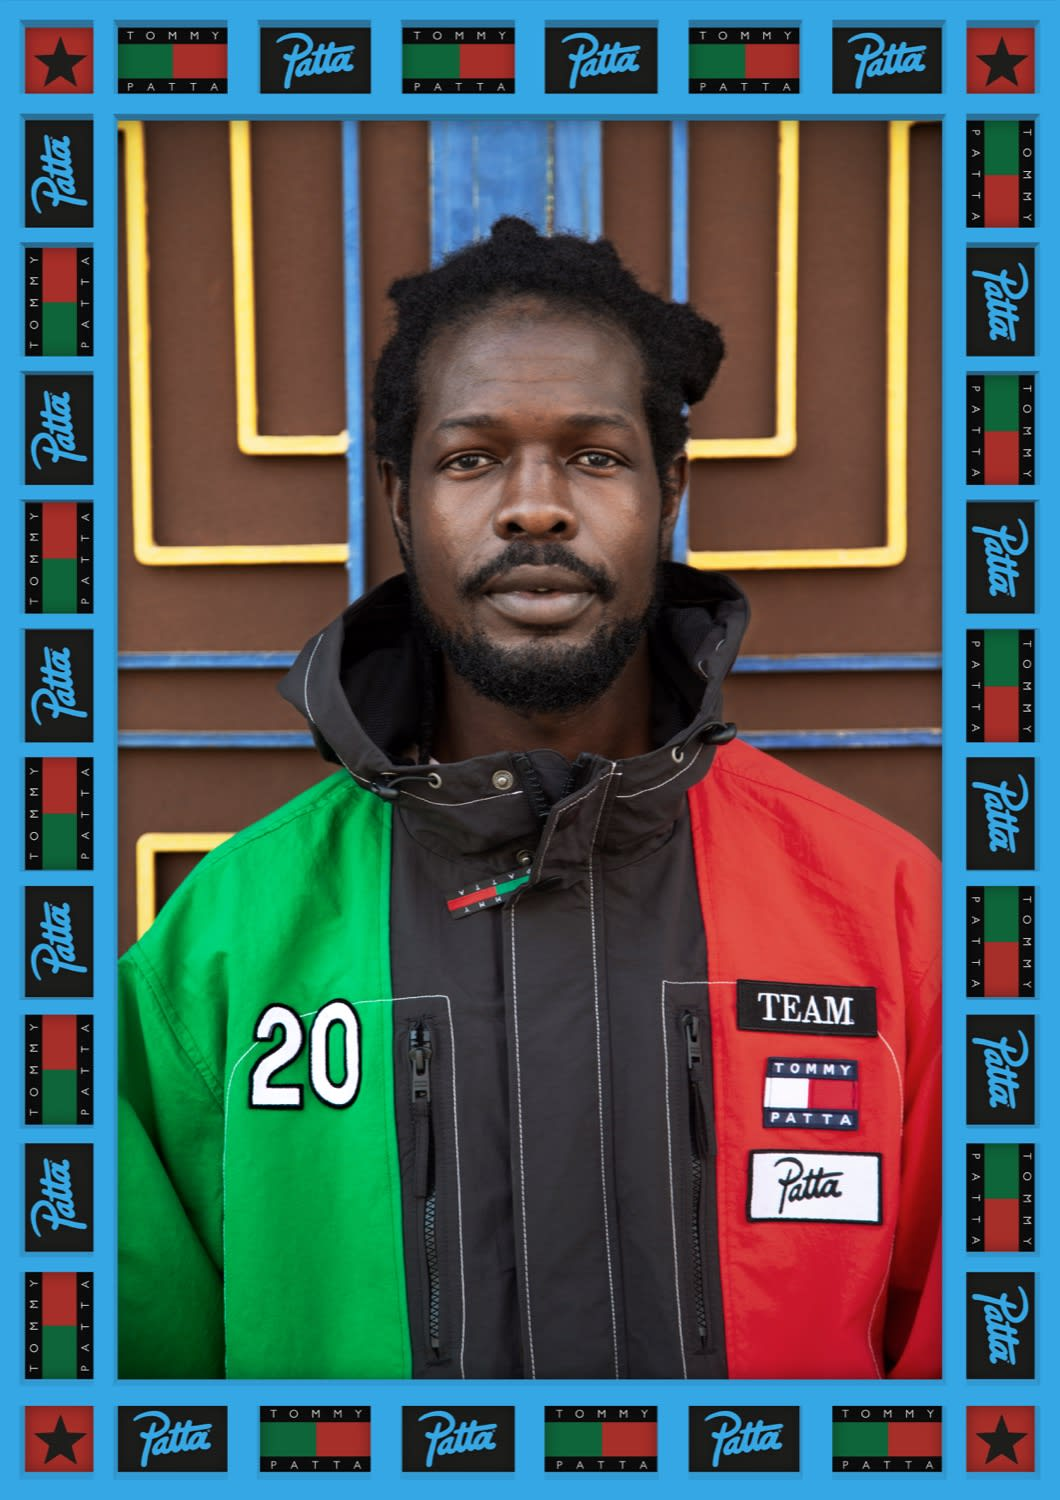 Tommy Jeans & Patta Celebrate Pan-African Unity in this look book shot by Hassan Hajjaj